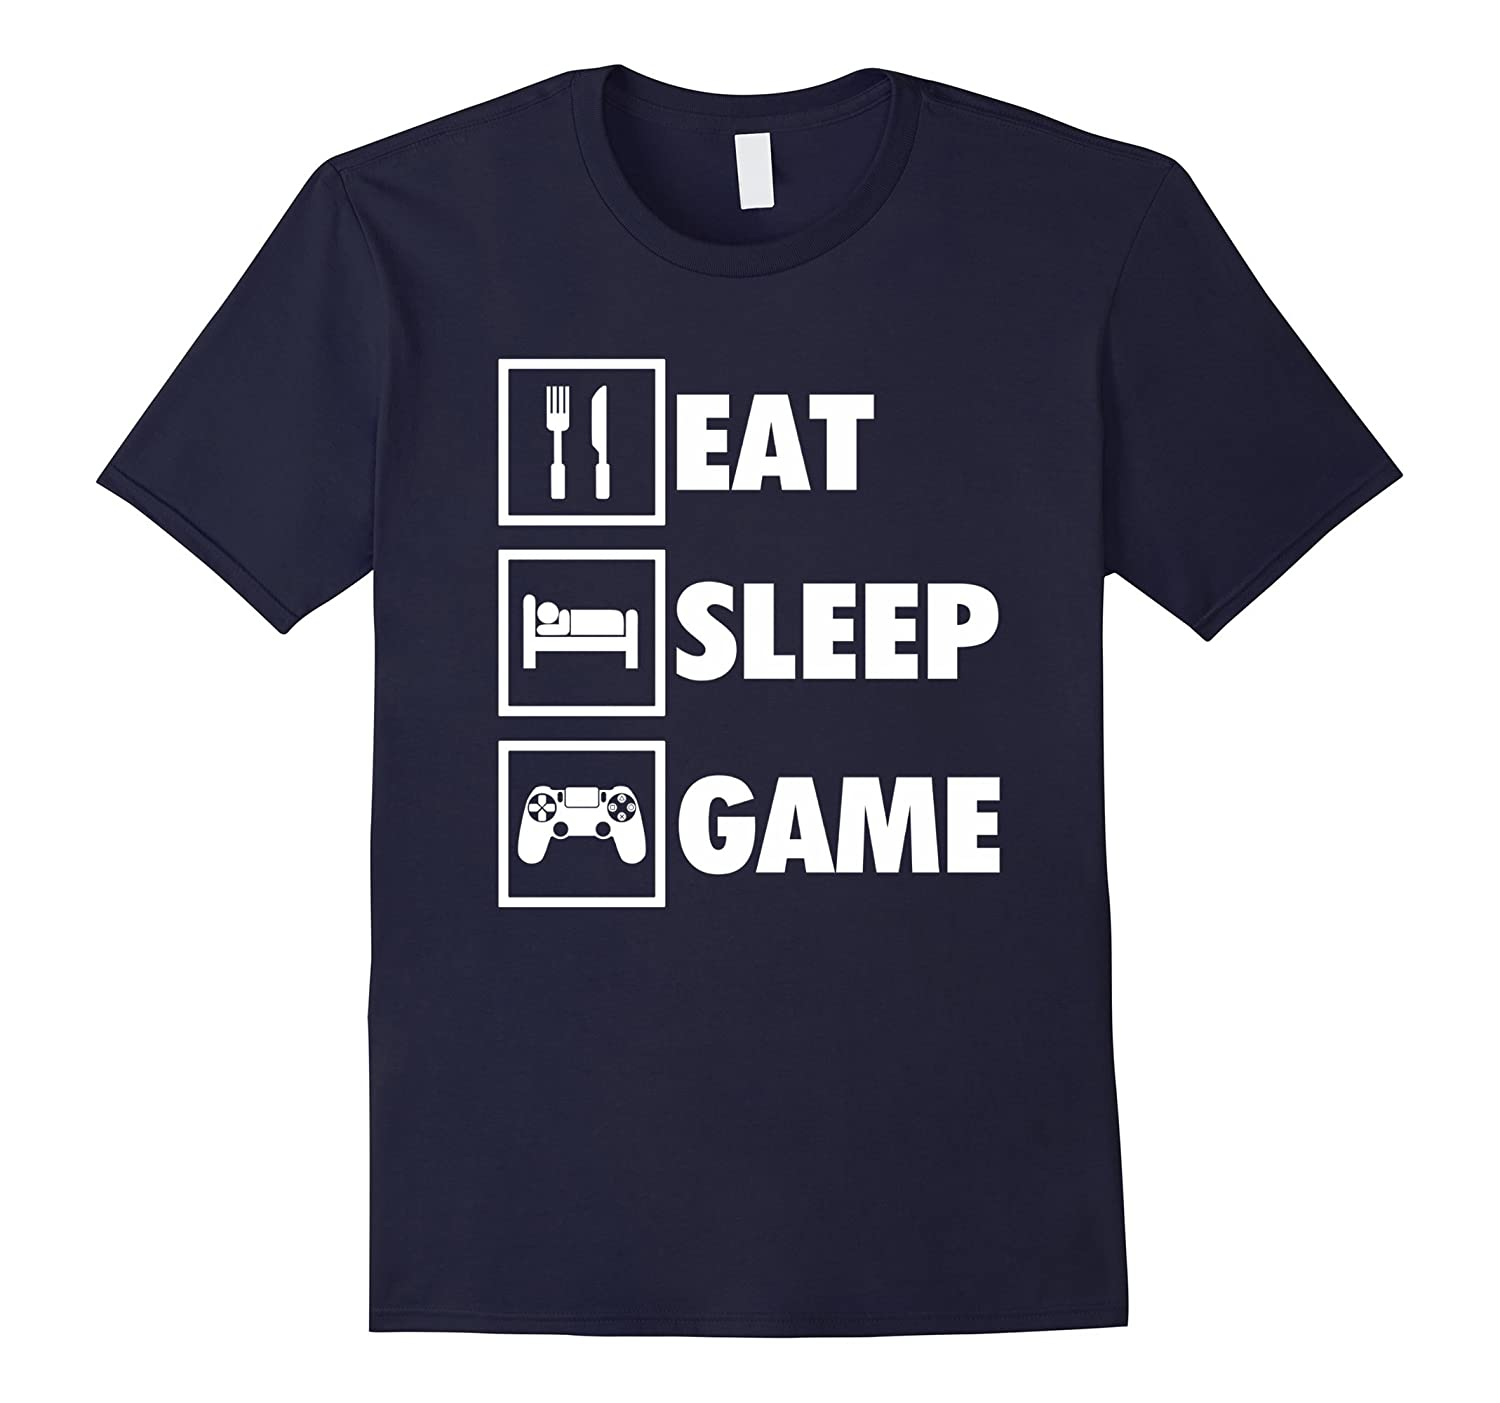 Eat Sleep Game Funny Gamer T-Shirt For Video Game Players-T-Shirt